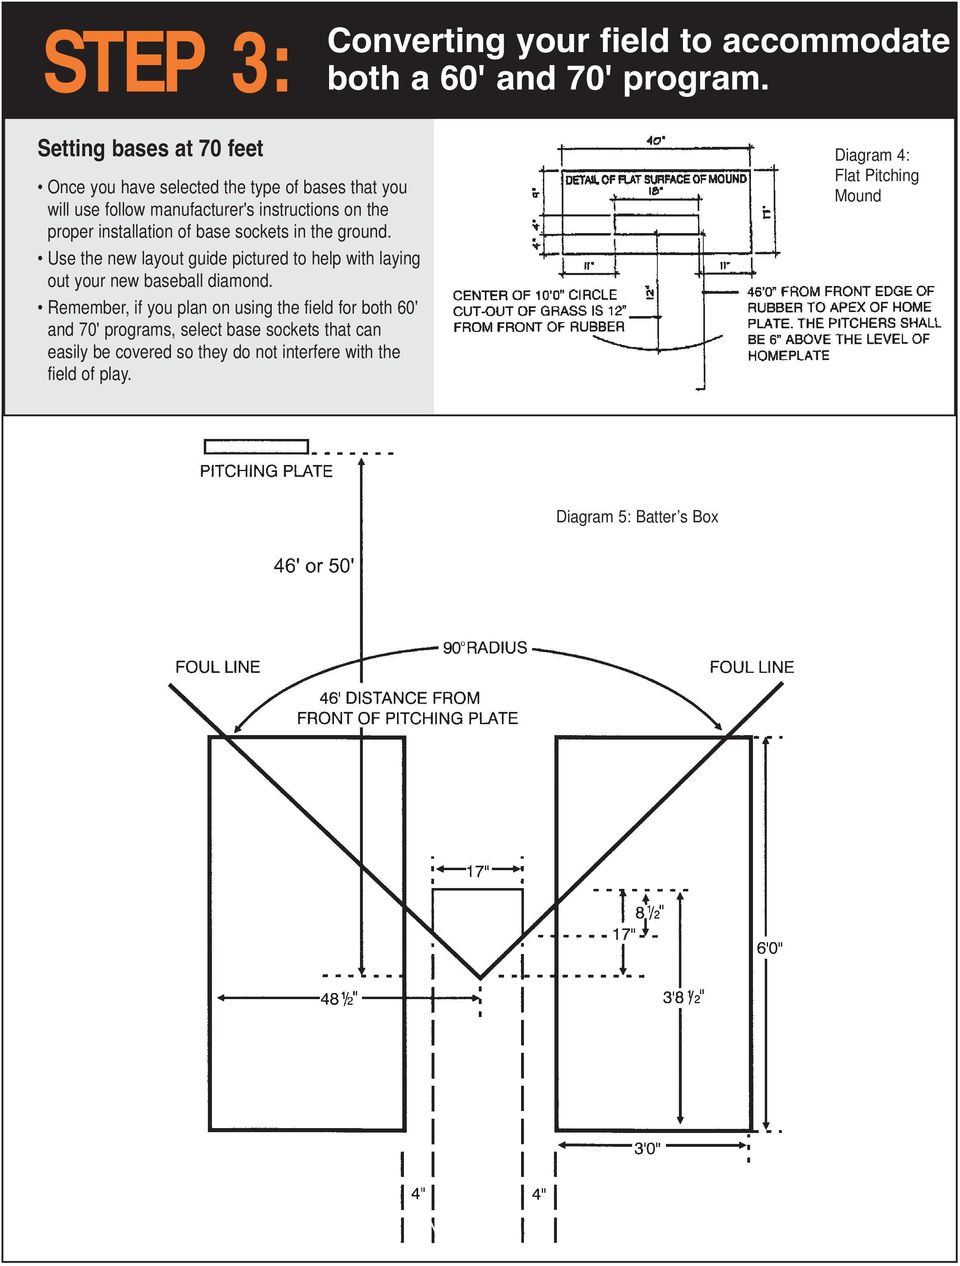 installation of base sockets in the ground. Use the new layout guide pictured to help with laying out your new baseball diamond.